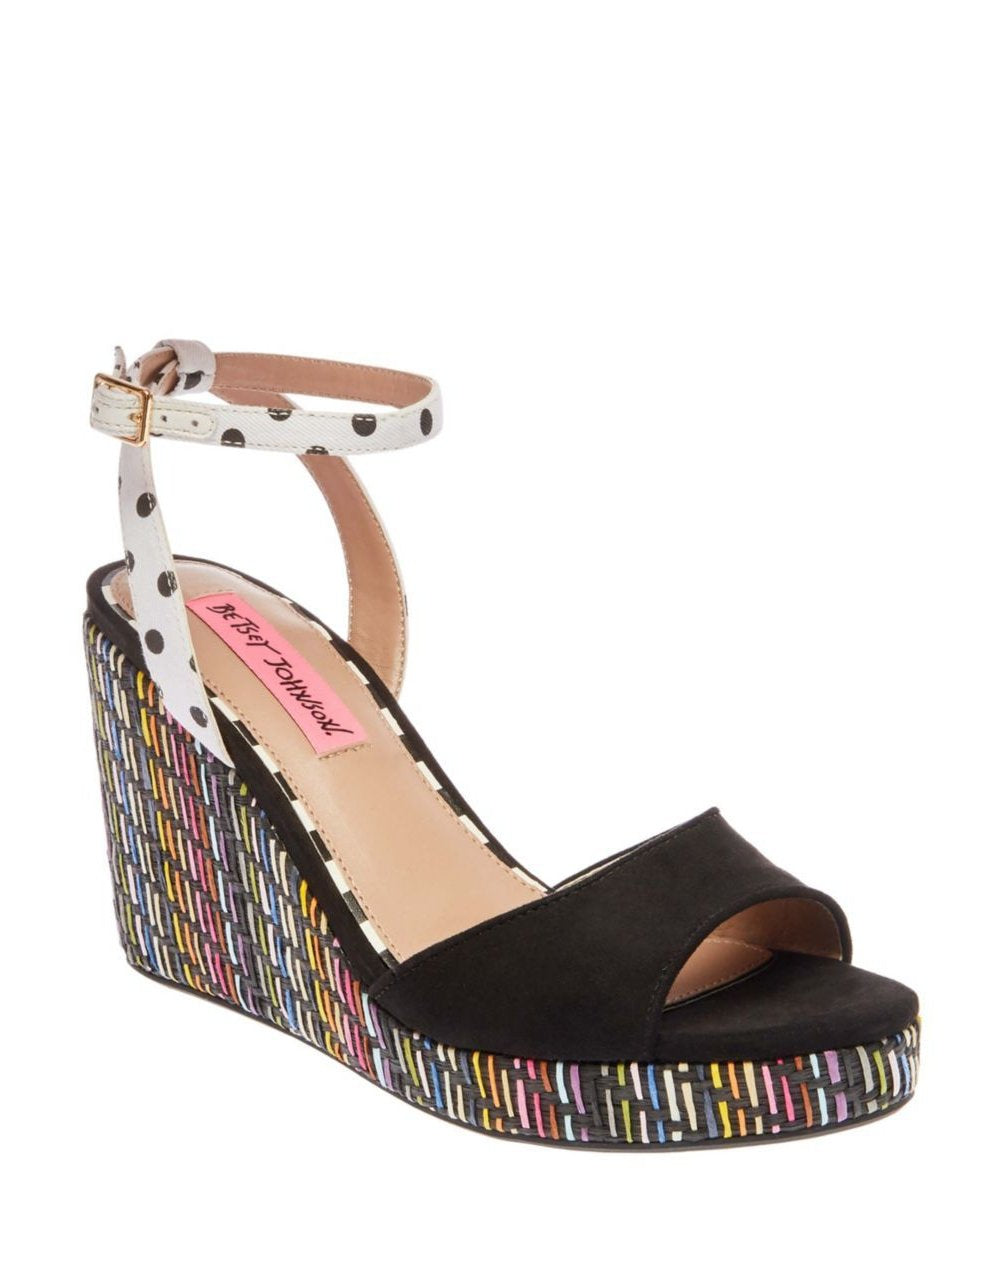 DOTIE BLACK - SHOES - Betsey Johnson